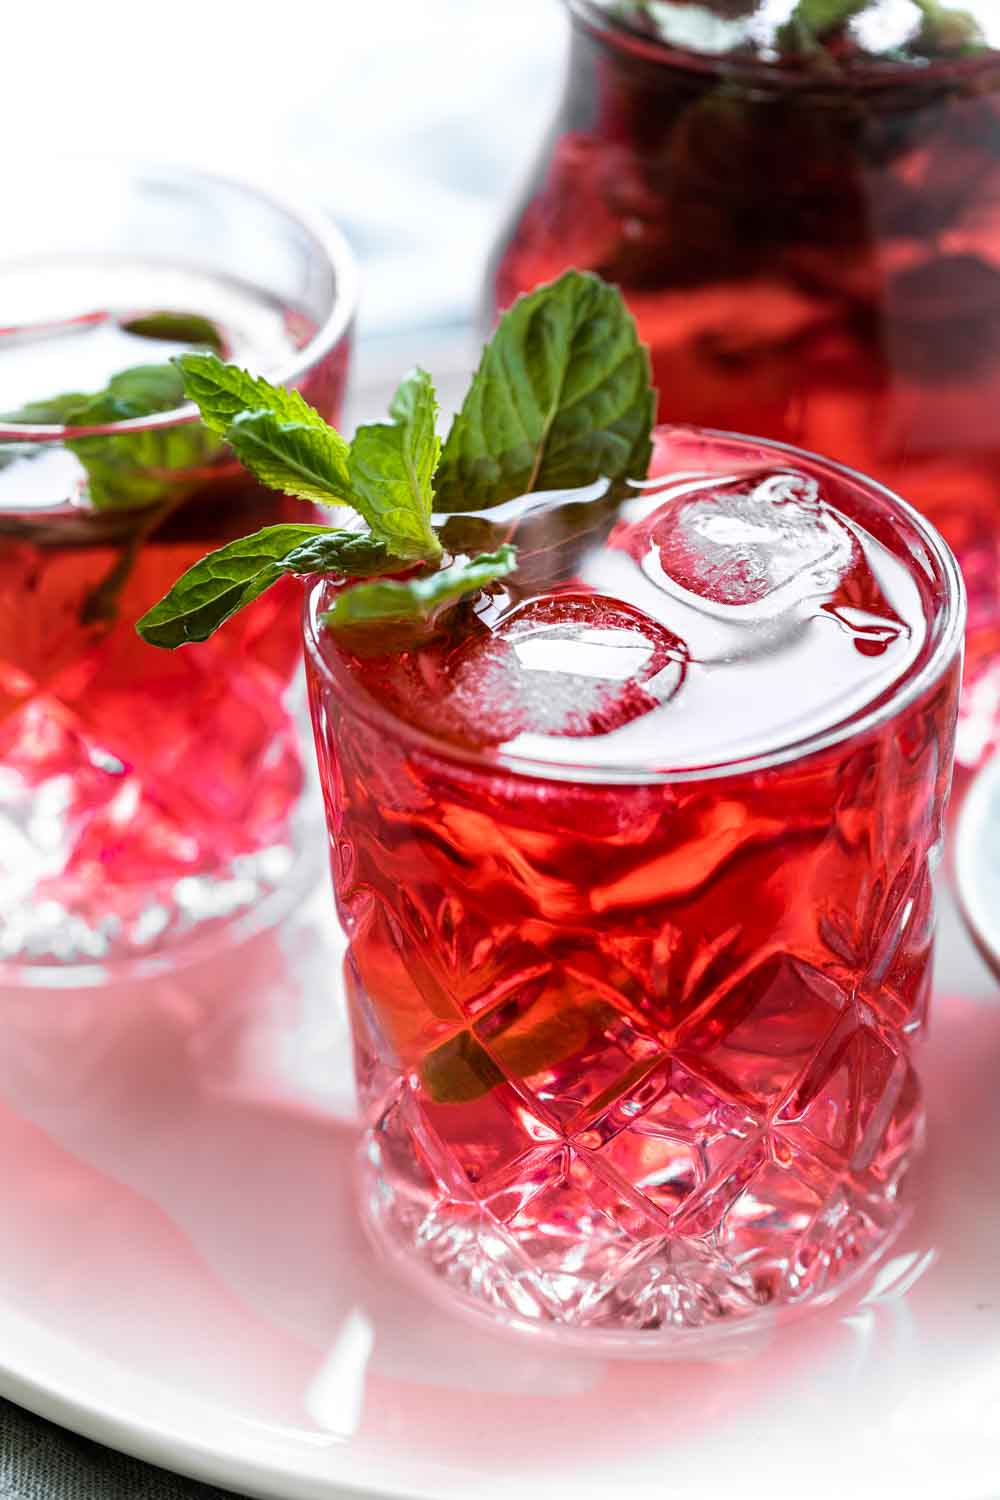 red cold hibiscus tea in glass with fresh mint leaves on white plate